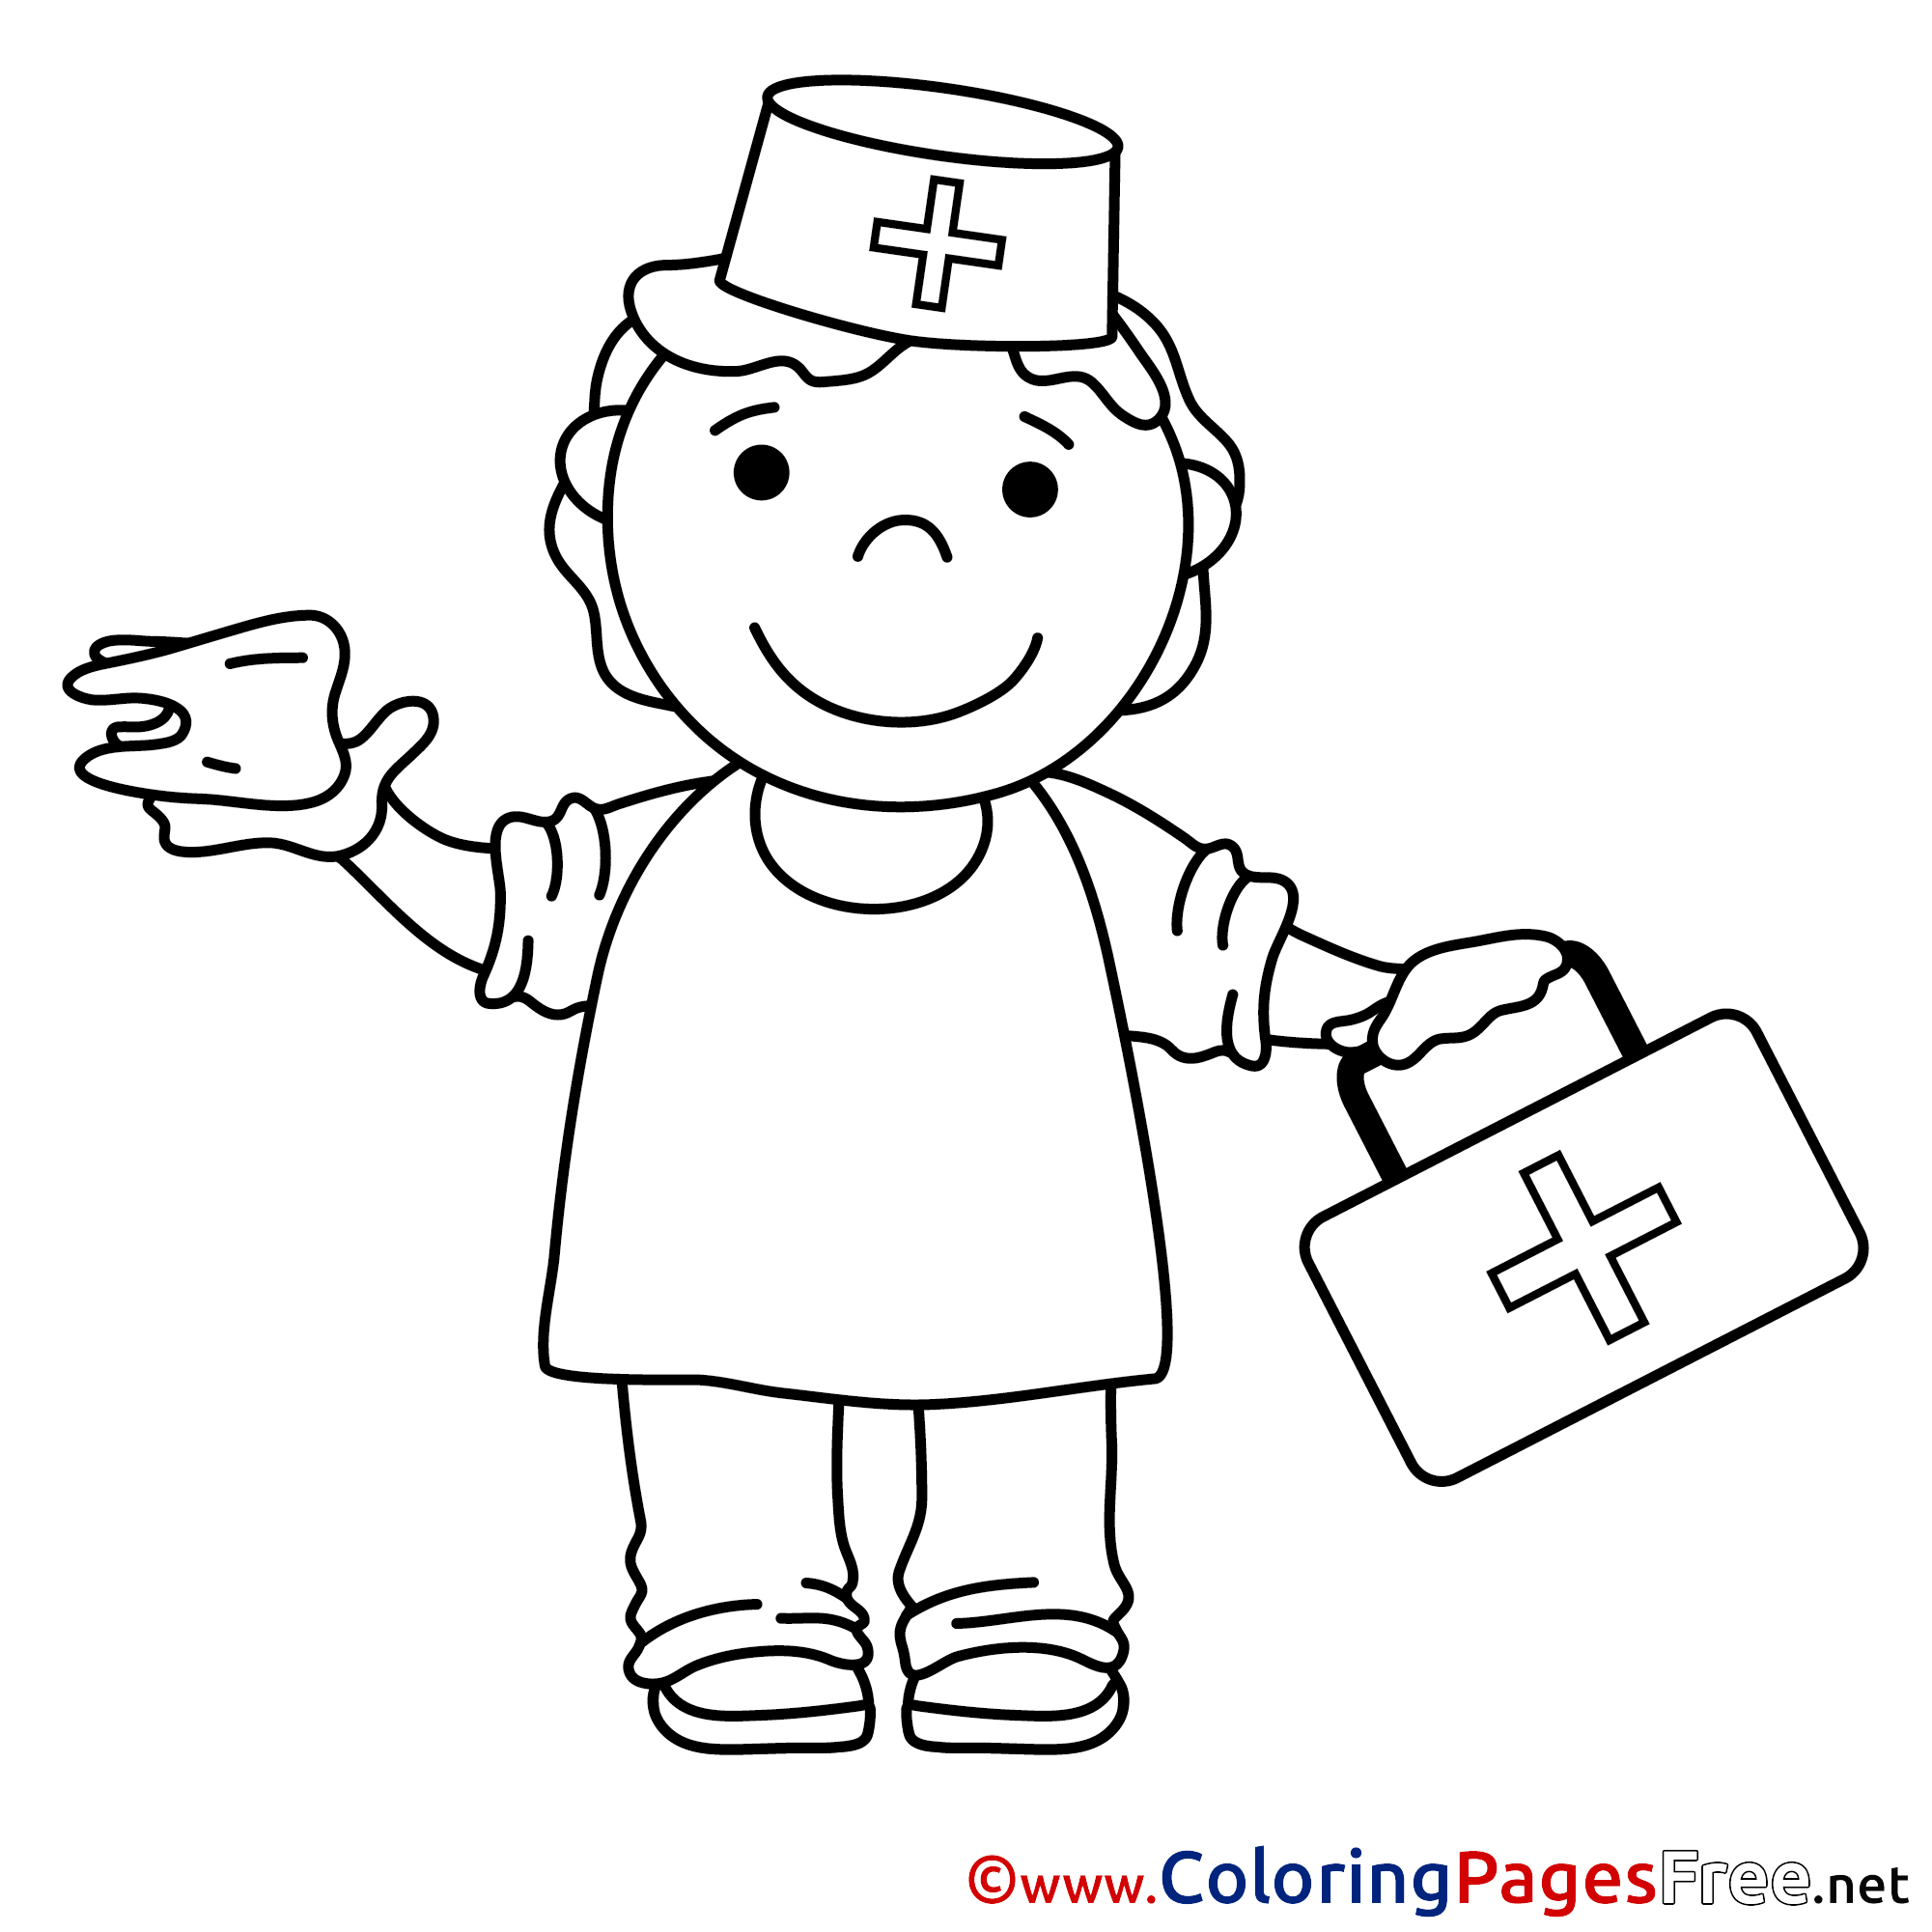 coloring picture nurse nurse coloring pages to download and print for free coloring nurse picture